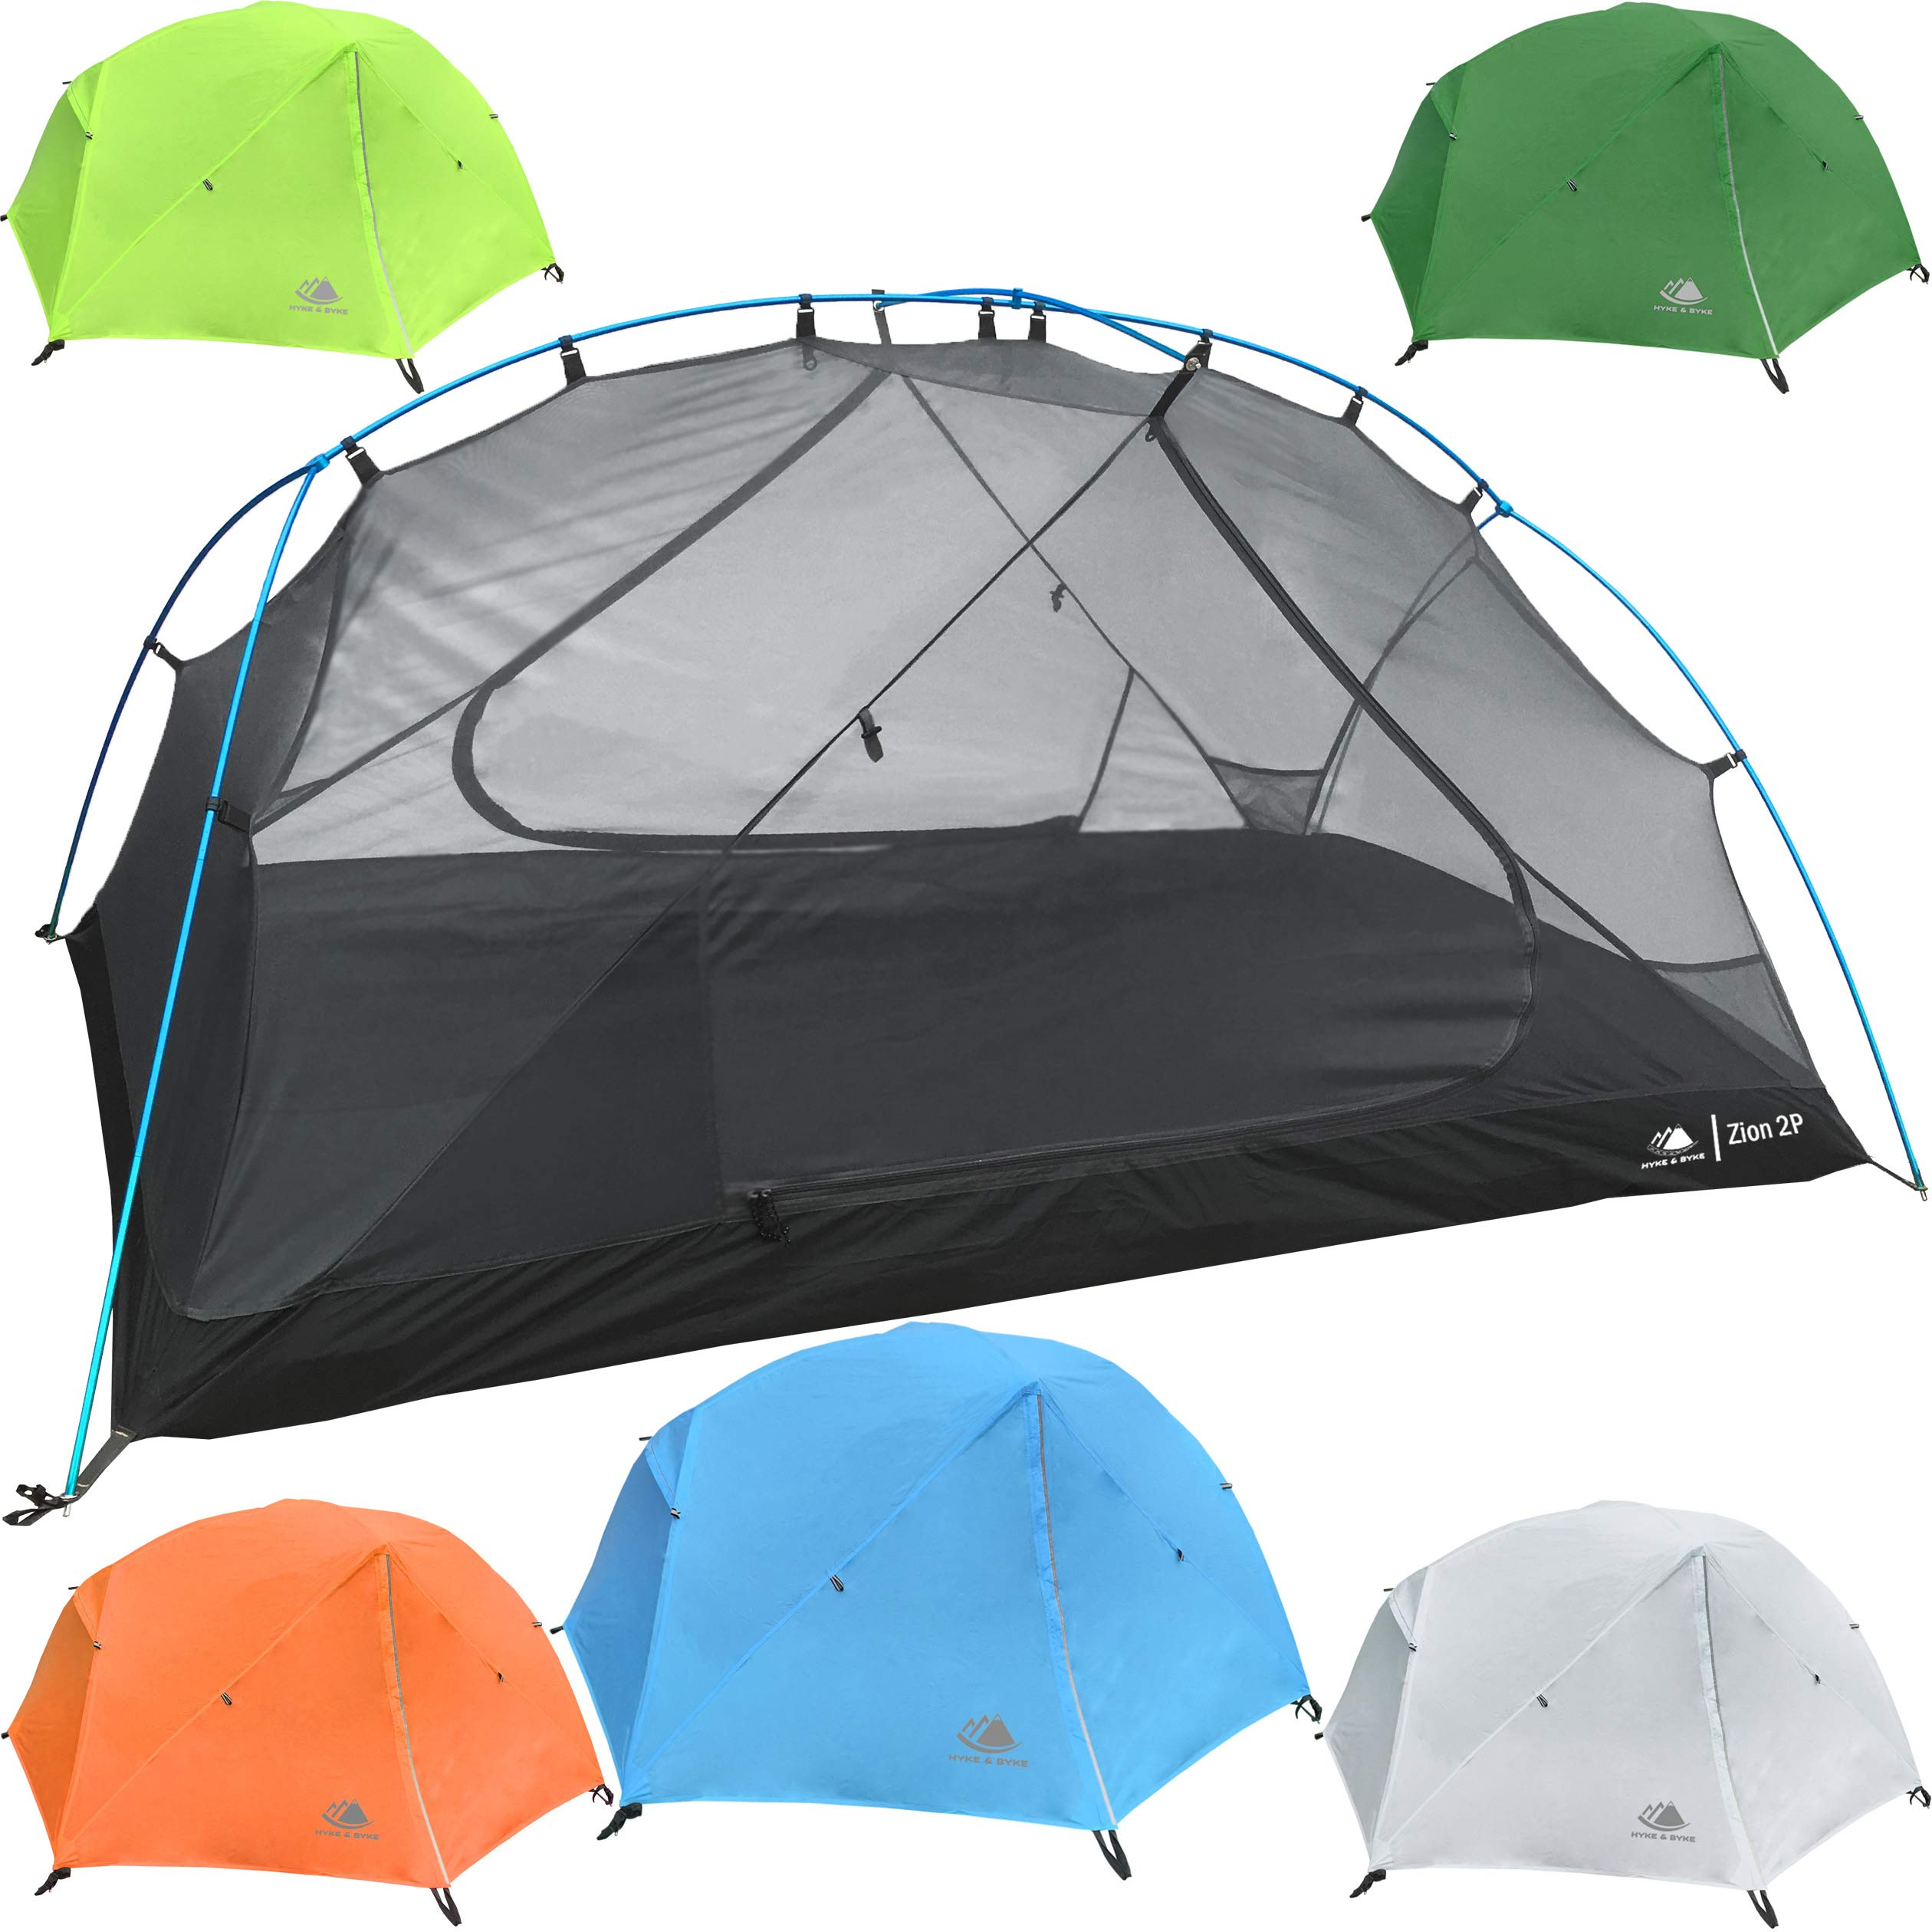 Hyke & Byke 2 Person Backpacking Tent with Footprint - Lightweight Zion Two Man 3 Season Ultralight, Waterproof, Ultra Compact 2p Freestanding Backpack Tents for Camping and Hiking (Blue) by Hyke & Byke